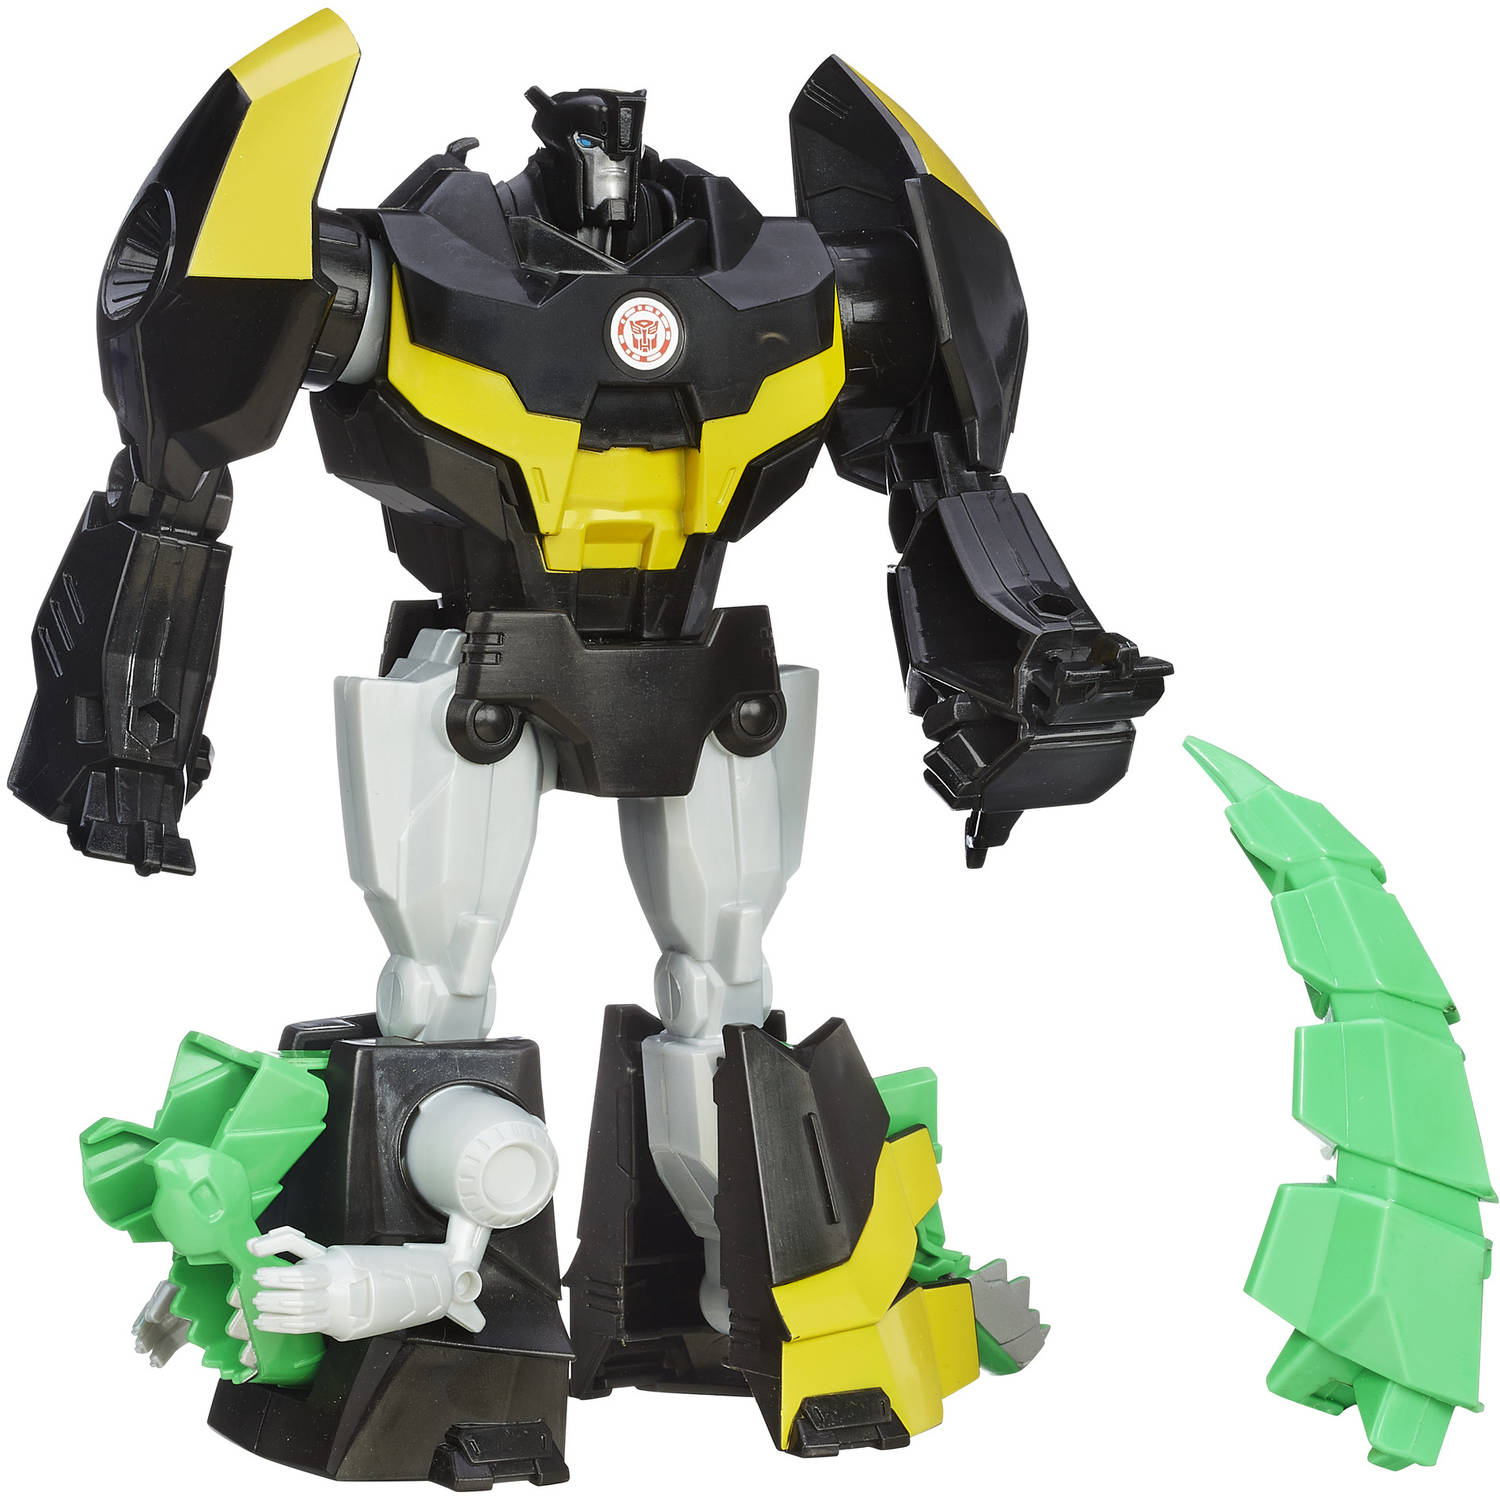 Transformers: Robots in Disguise 3-Step Changers Stealthasaurus Rex Grimlock by Hasbro